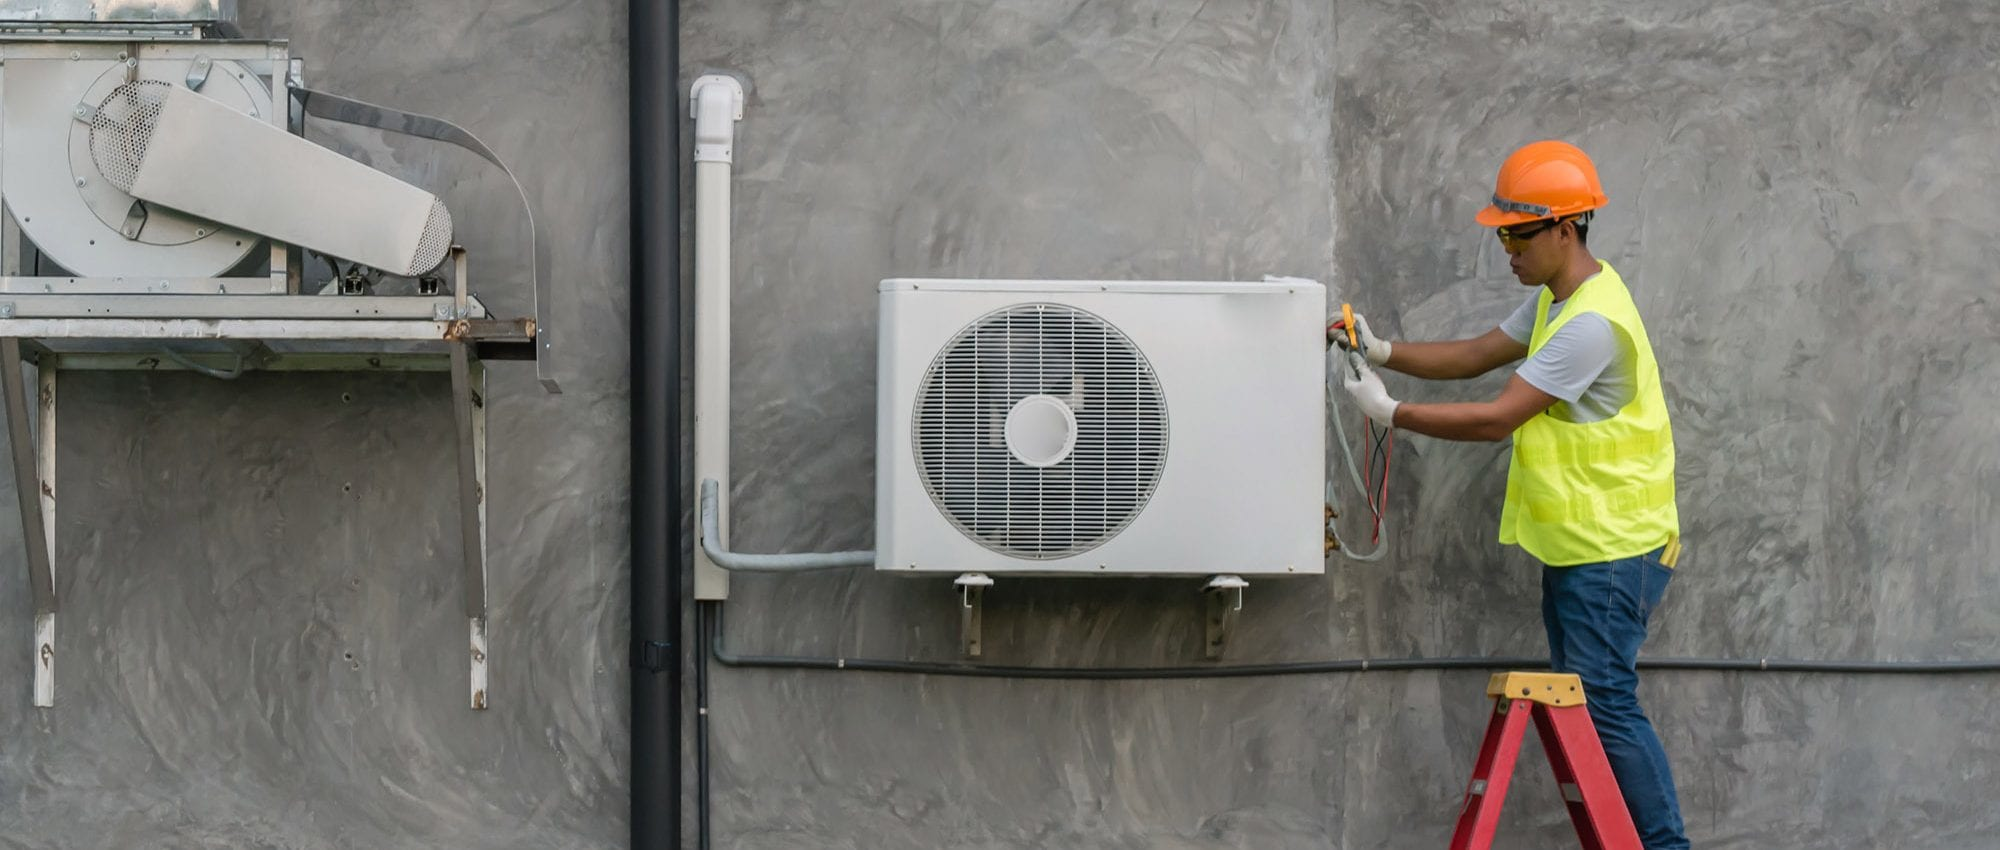 picture of an HVAC Technician checking an AC unit outside